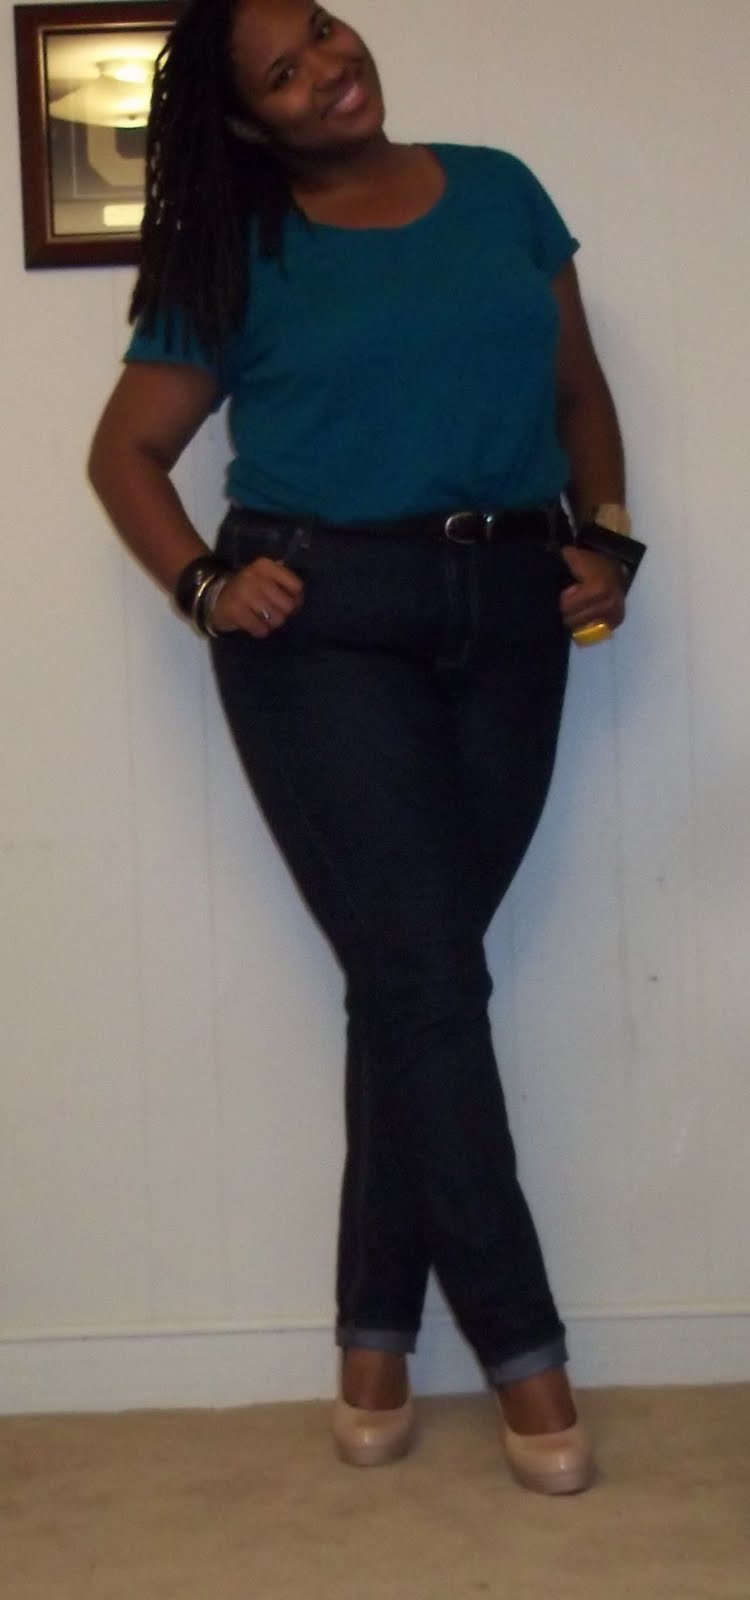 Belts skinny jeans and tucked in shirts a thick girl 39 s for Tucked in shirt plus size